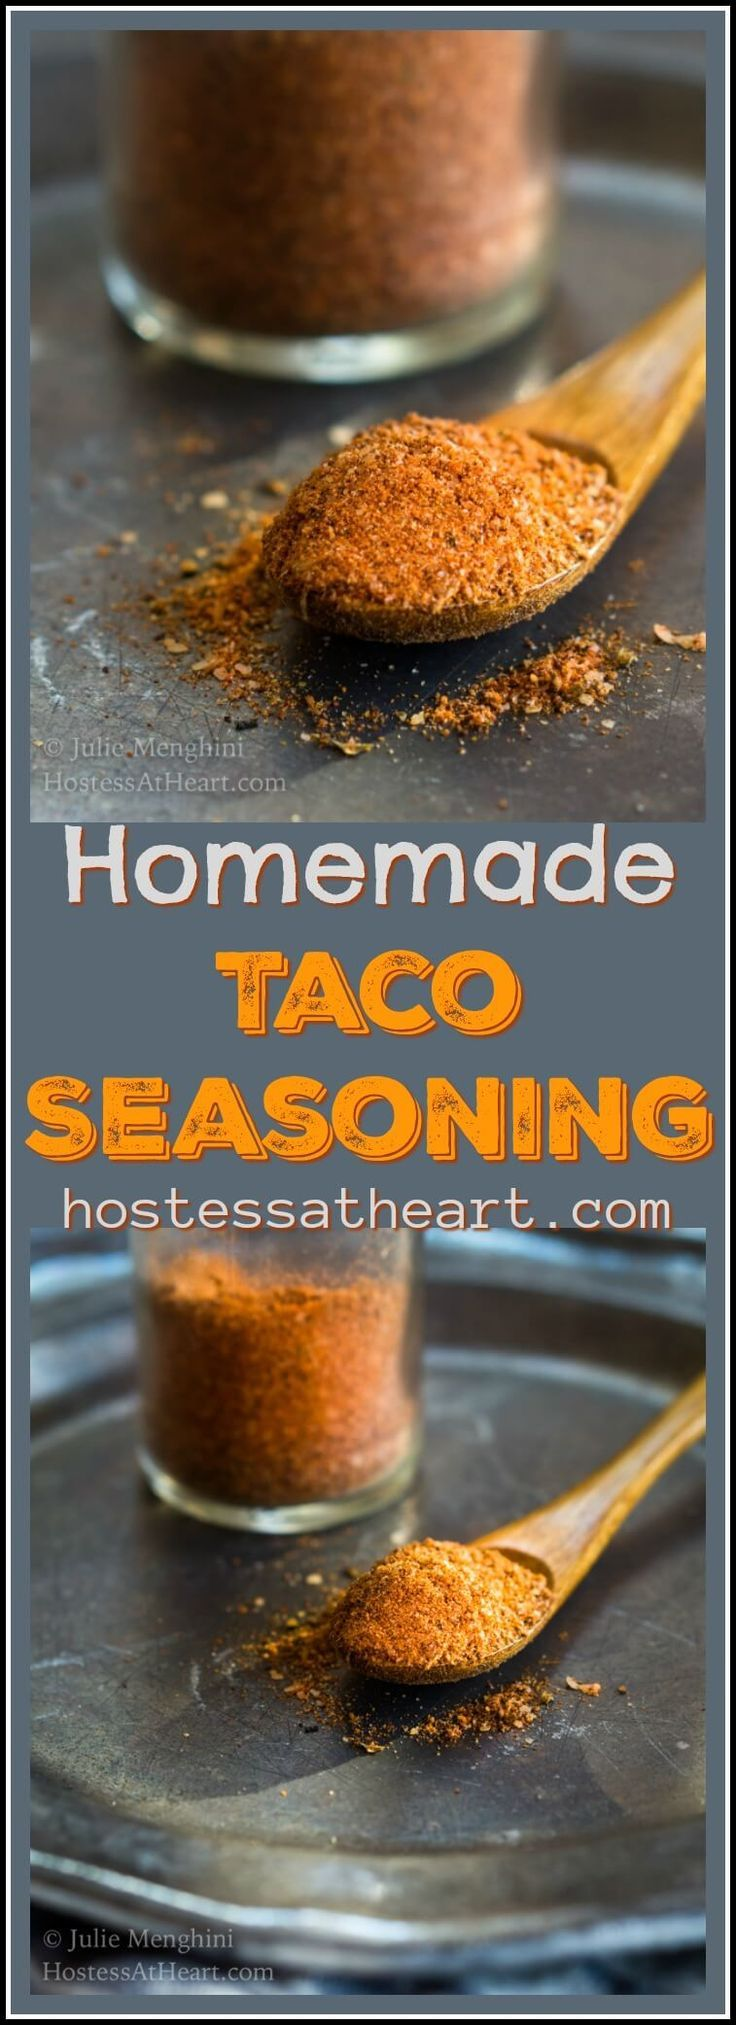 Homemade Taco Seasoning allows you to season dishes exactly the way you like making it perfect for people on special diets or those who like to control intensity.  #MexicanFood #Seasoning #Spices #TacoTuesday | Taco Seasoning Mix | Tacoseasoning | How To Make Taco Seasoning via @HostessAtHeart